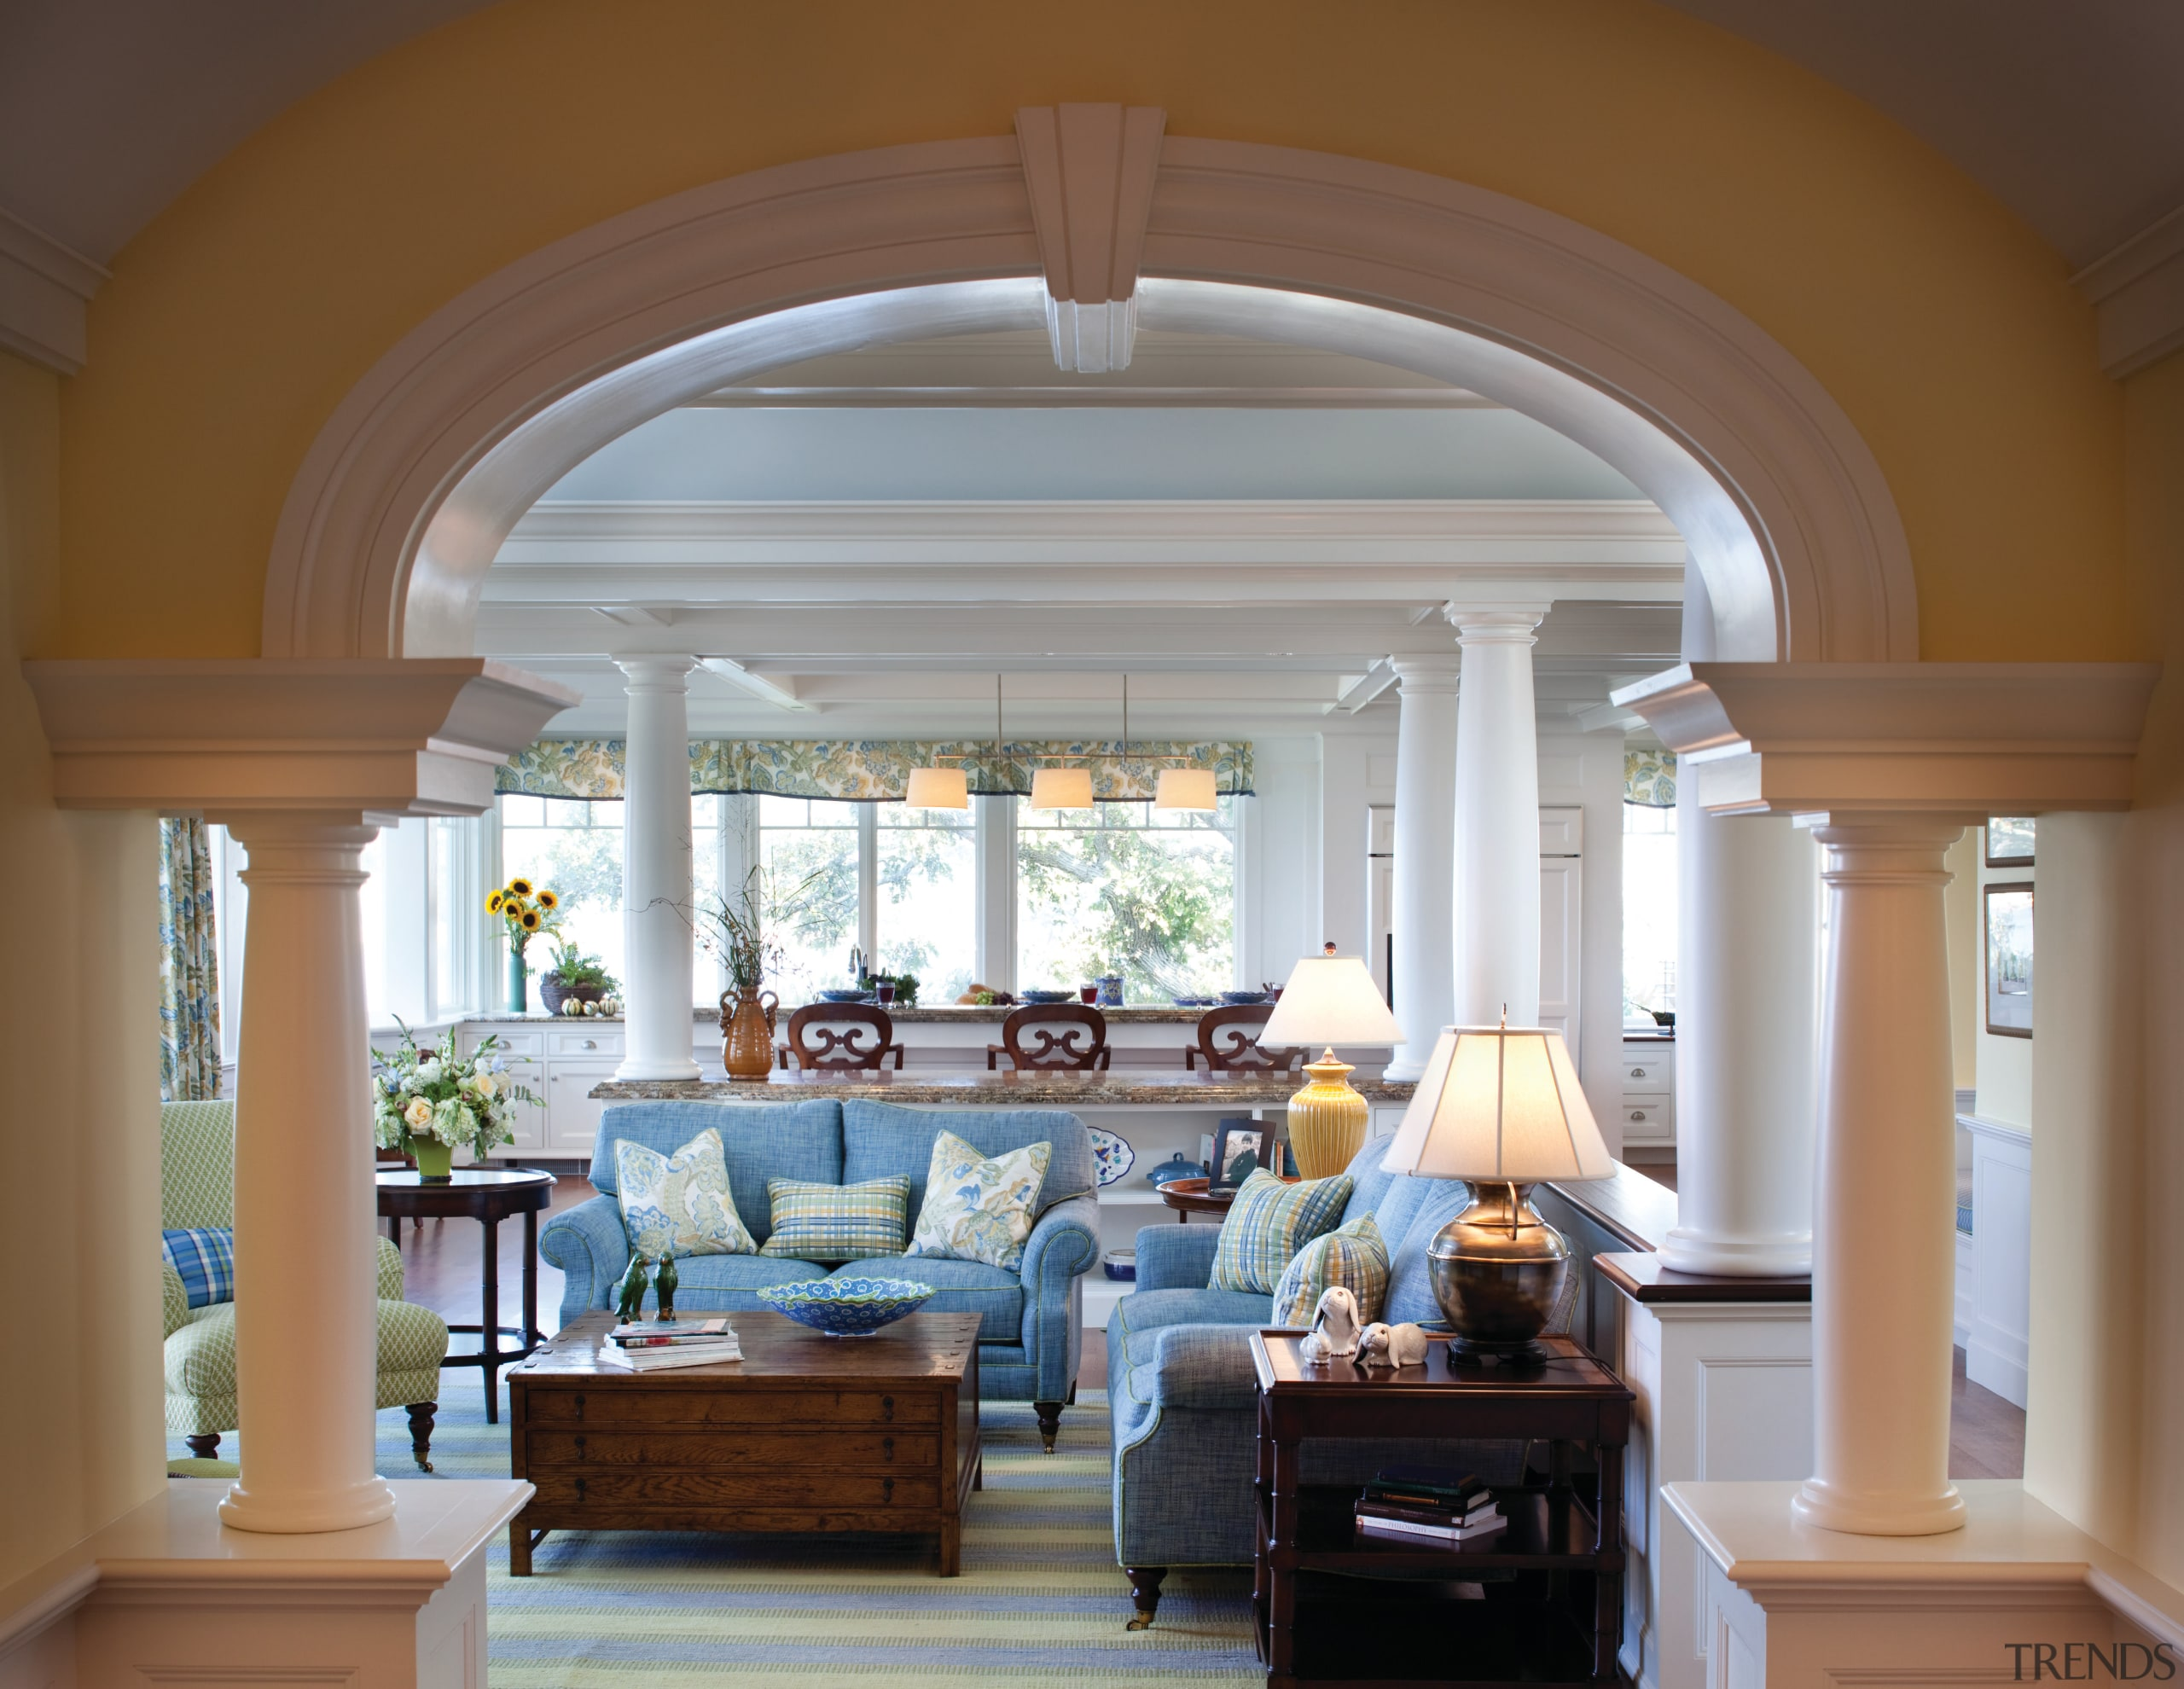 An expanded hallway now provides an easy transition arch, ceiling, column, estate, home, interior design, living room, real estate, structure, window, brown, gray